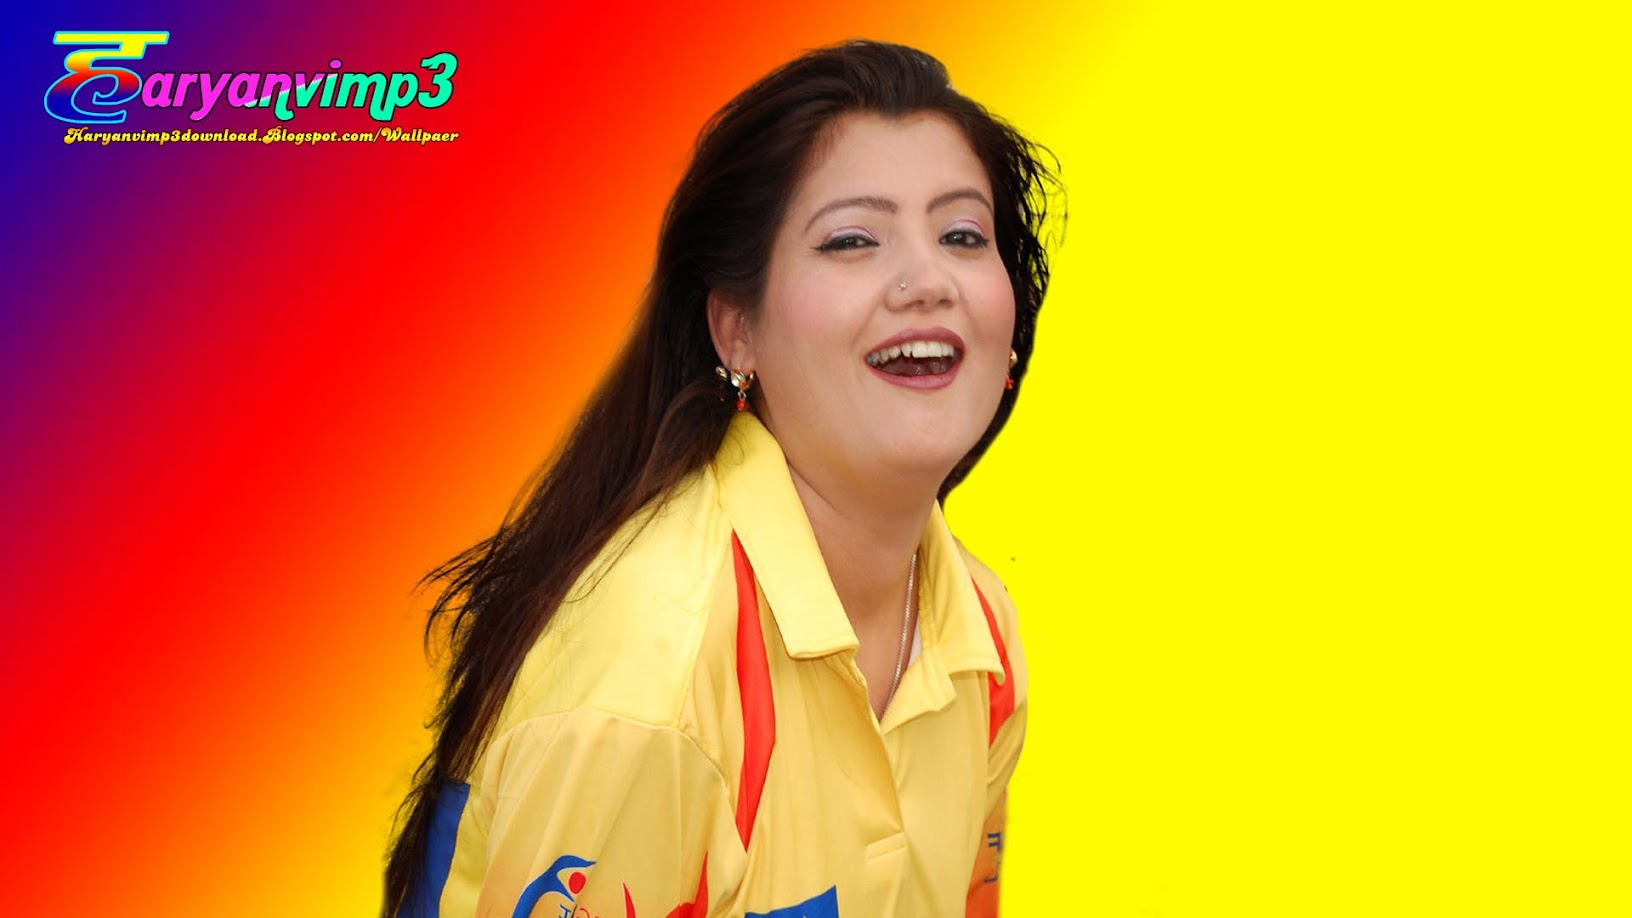 haryanvi mp4: manju bala wallpaper